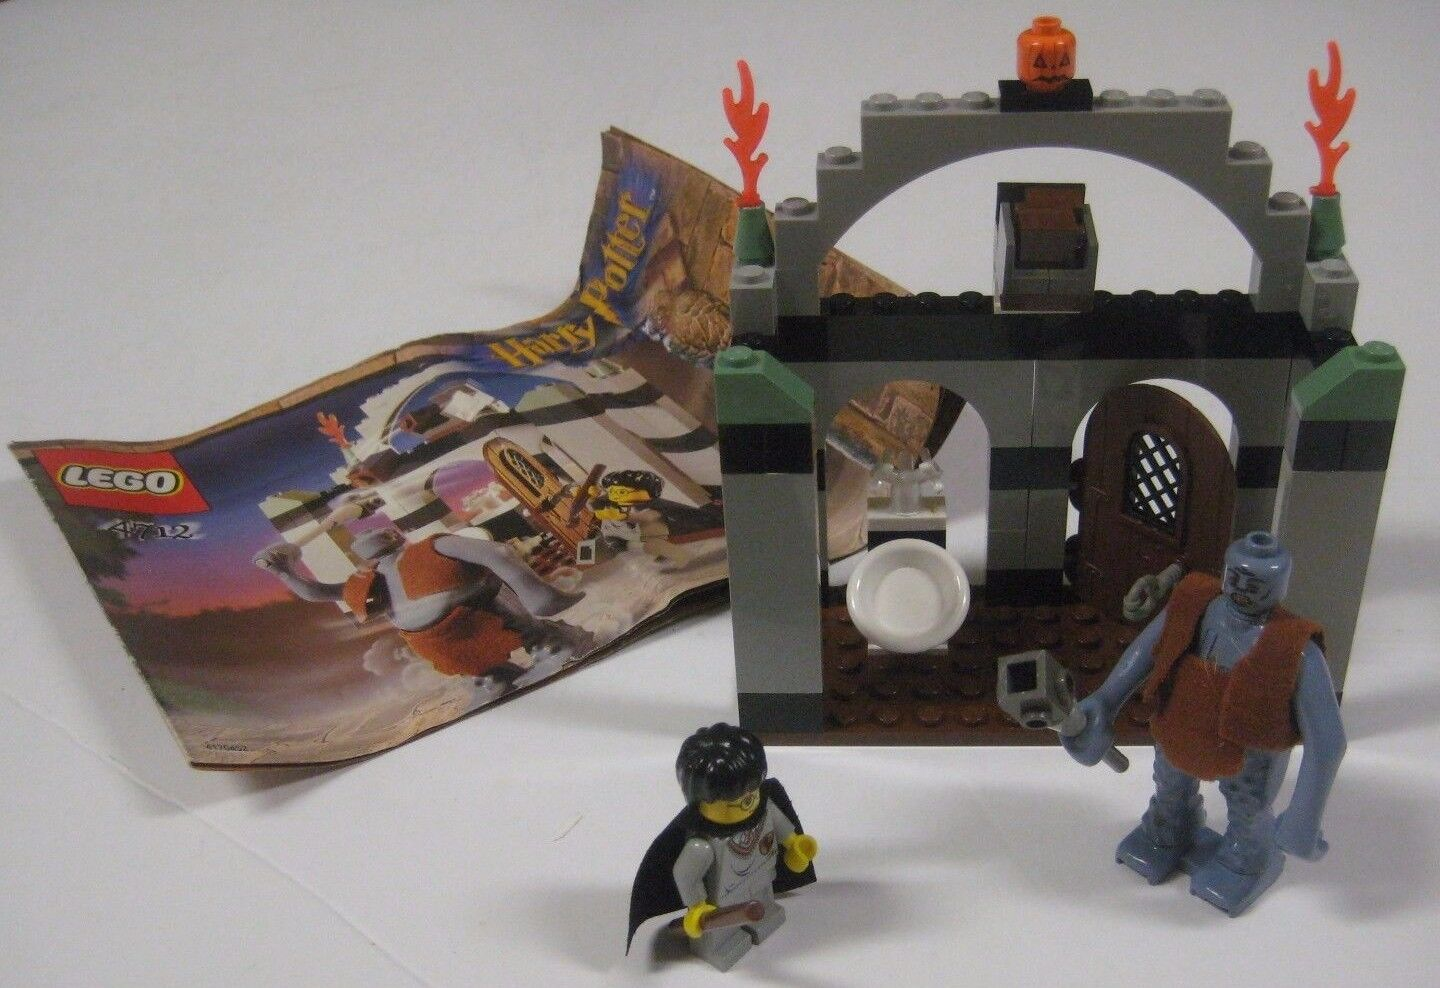 Lego 4712 Harry Potter TROLL ON THE LOOSE LOOSE LOOSE Philosopher's Stone COMPLETE w  Manual 9434c9